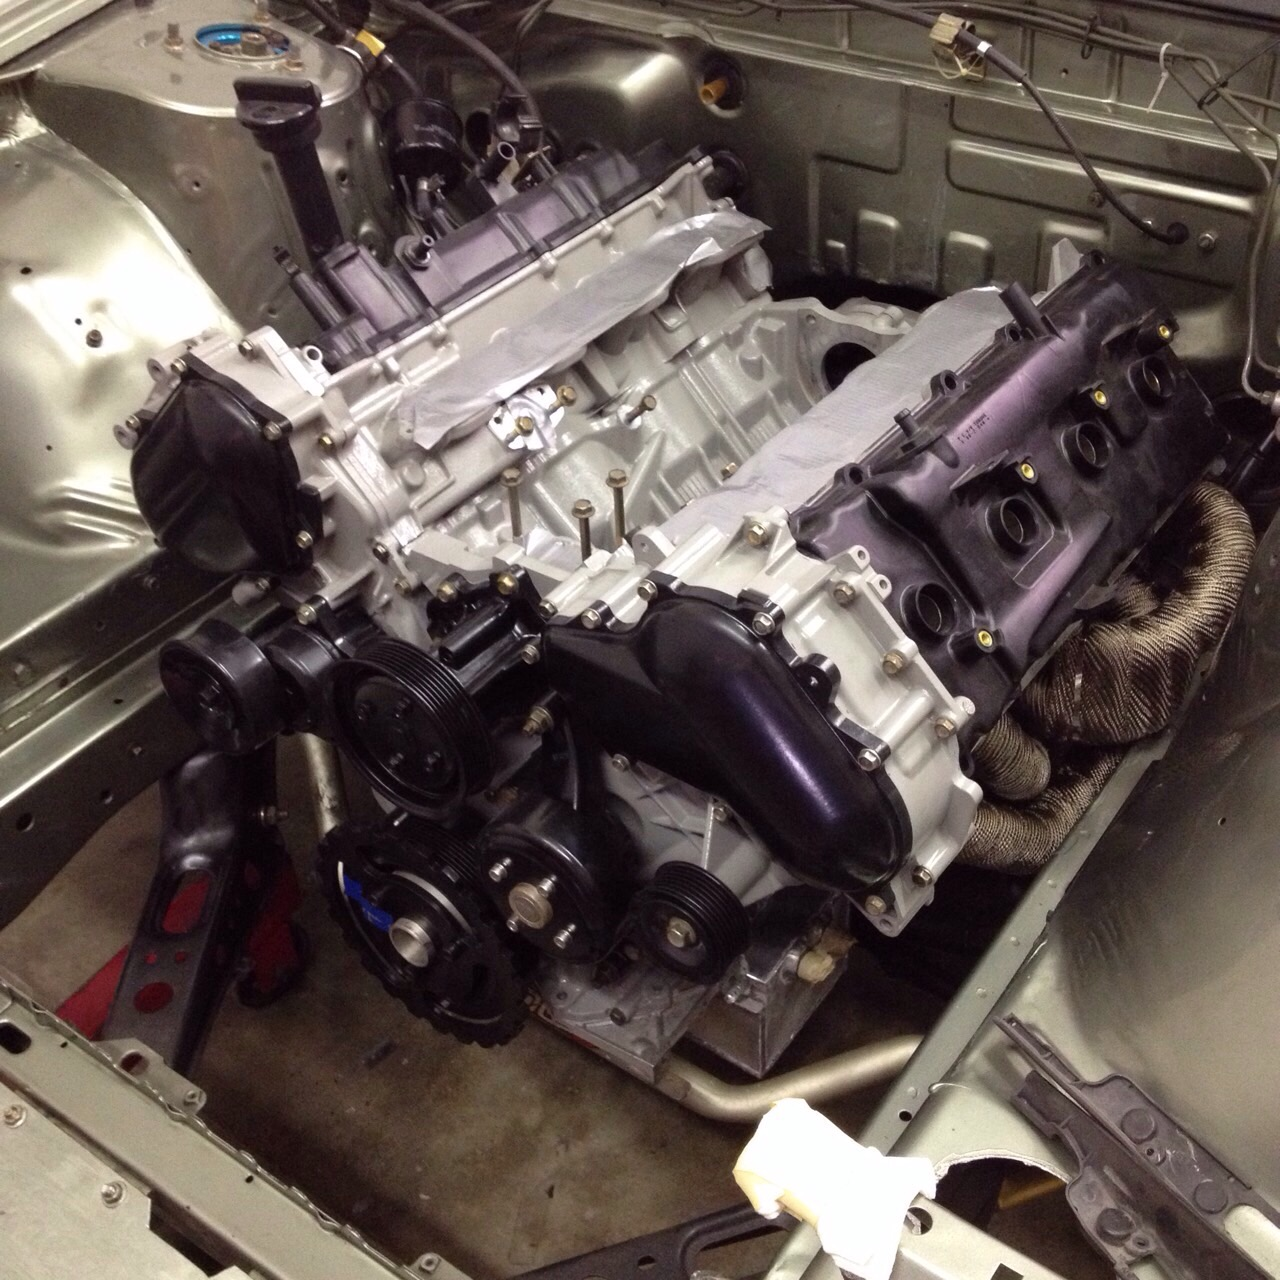 vk56 going in s13 with equal length headers and modified oil pan